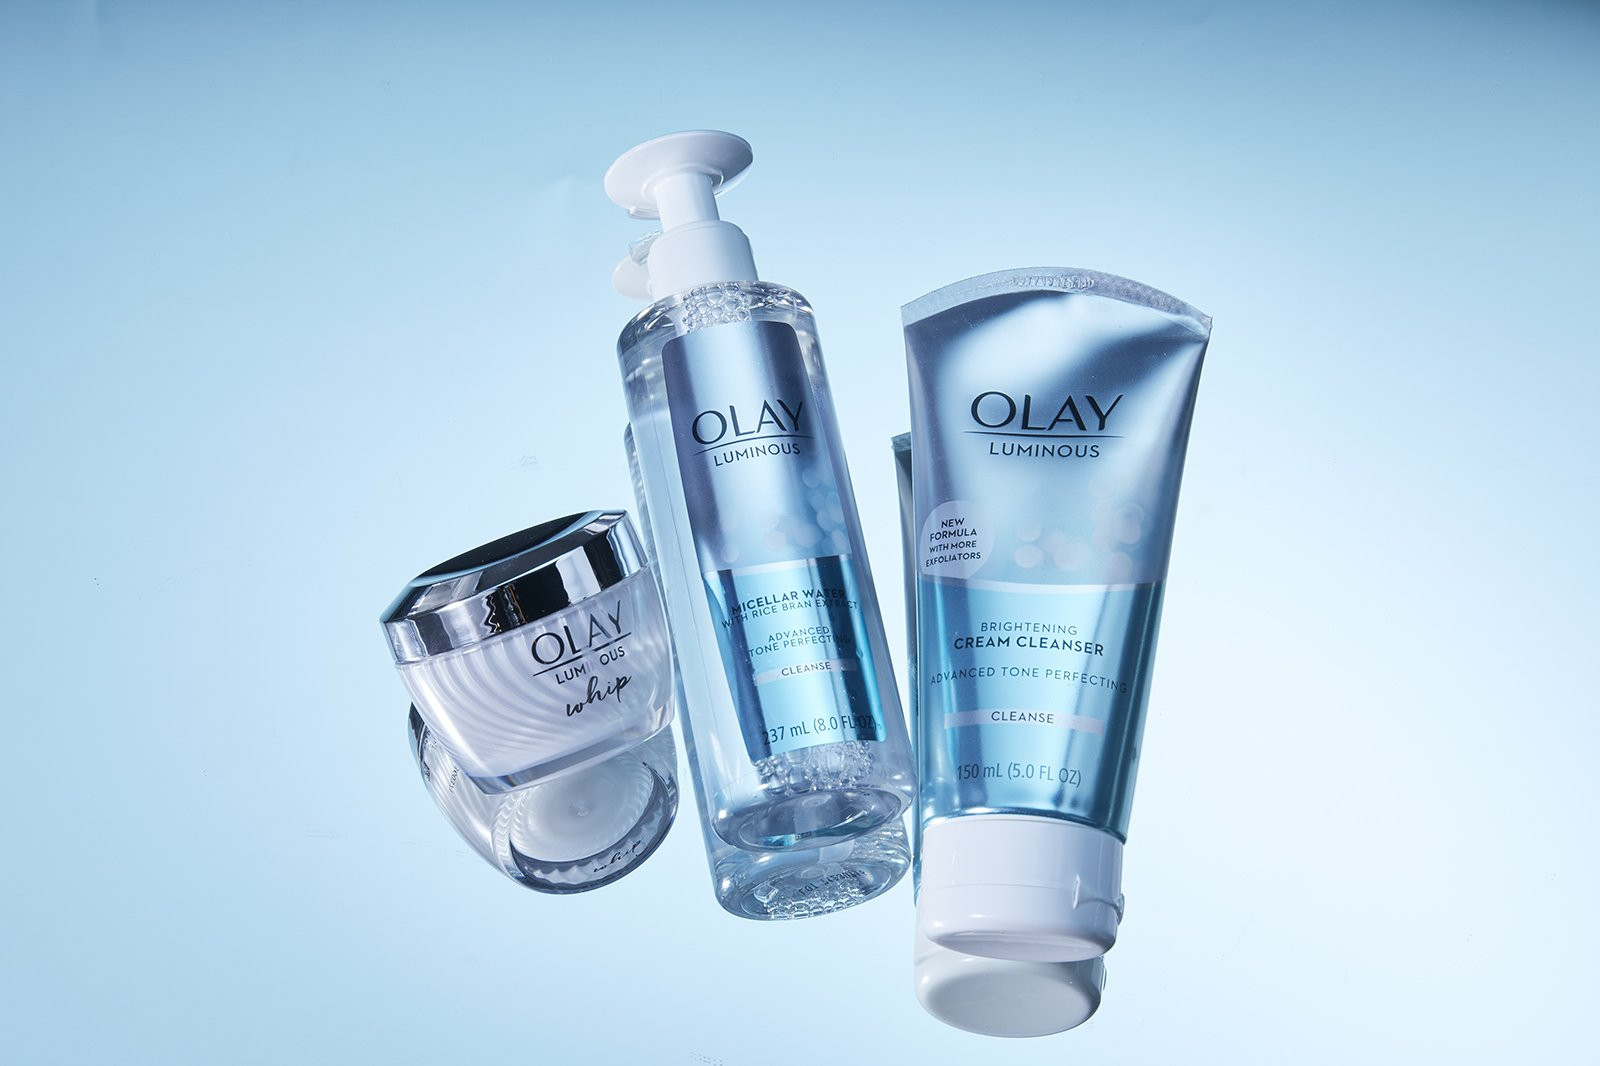 Olay product family before retouching